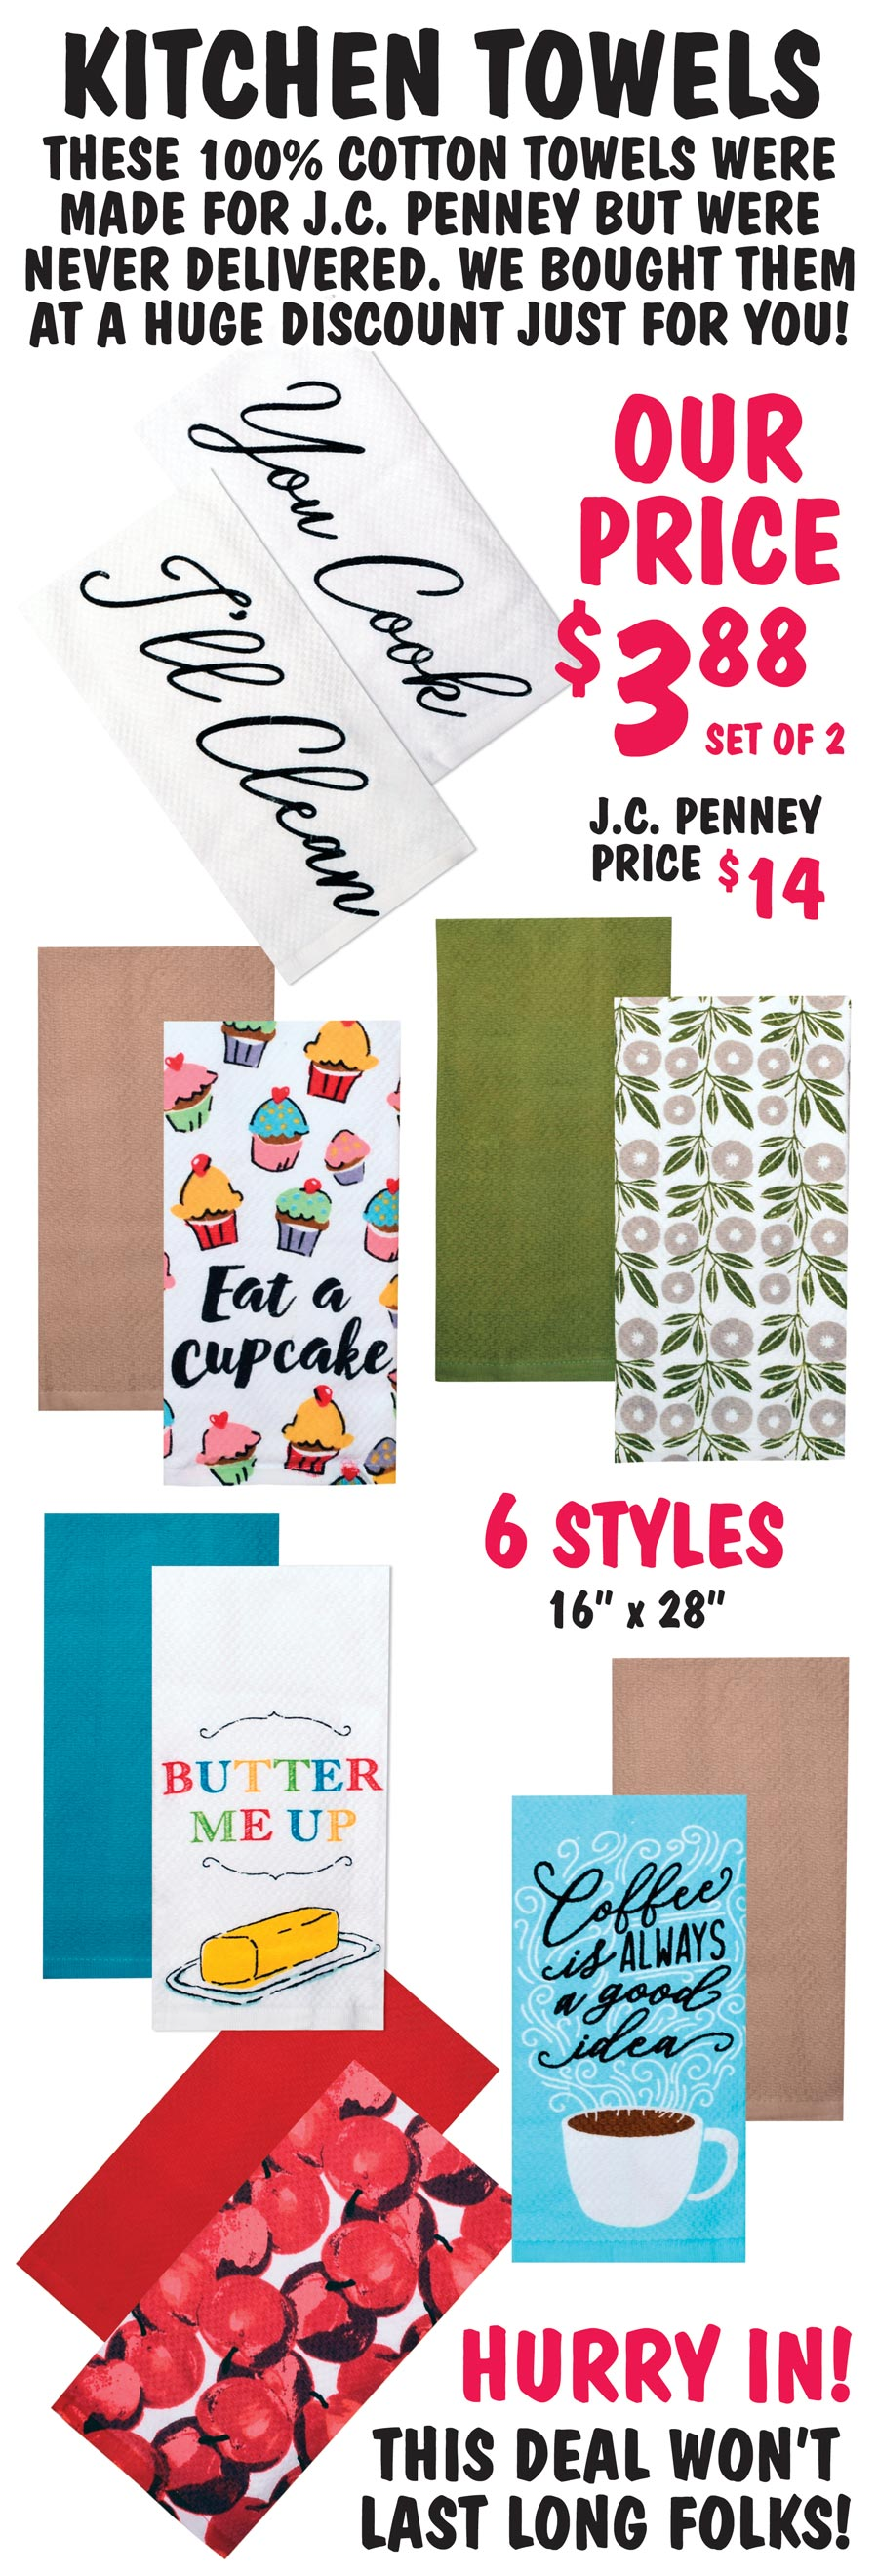 Kitchen Towels - 6 Styles $3.88 for a set of 2. Hurry in before they sell out!